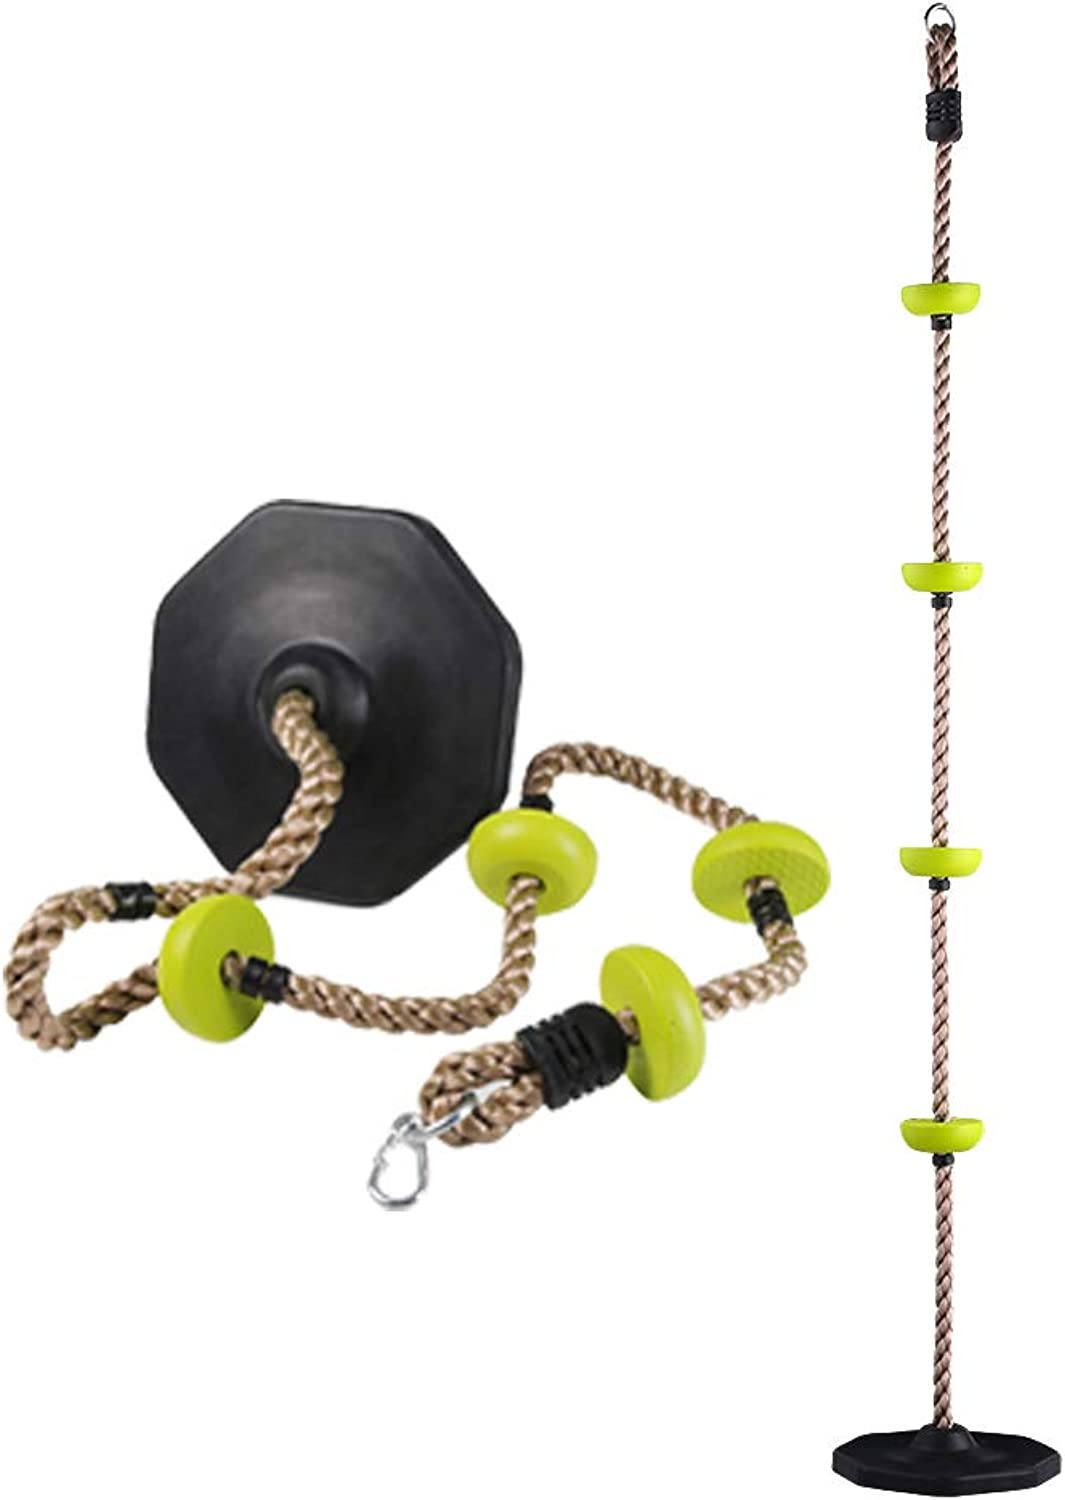 Eggdel Four Knotted Climbing Pp Rope with Rubber Base for Enfants-vert